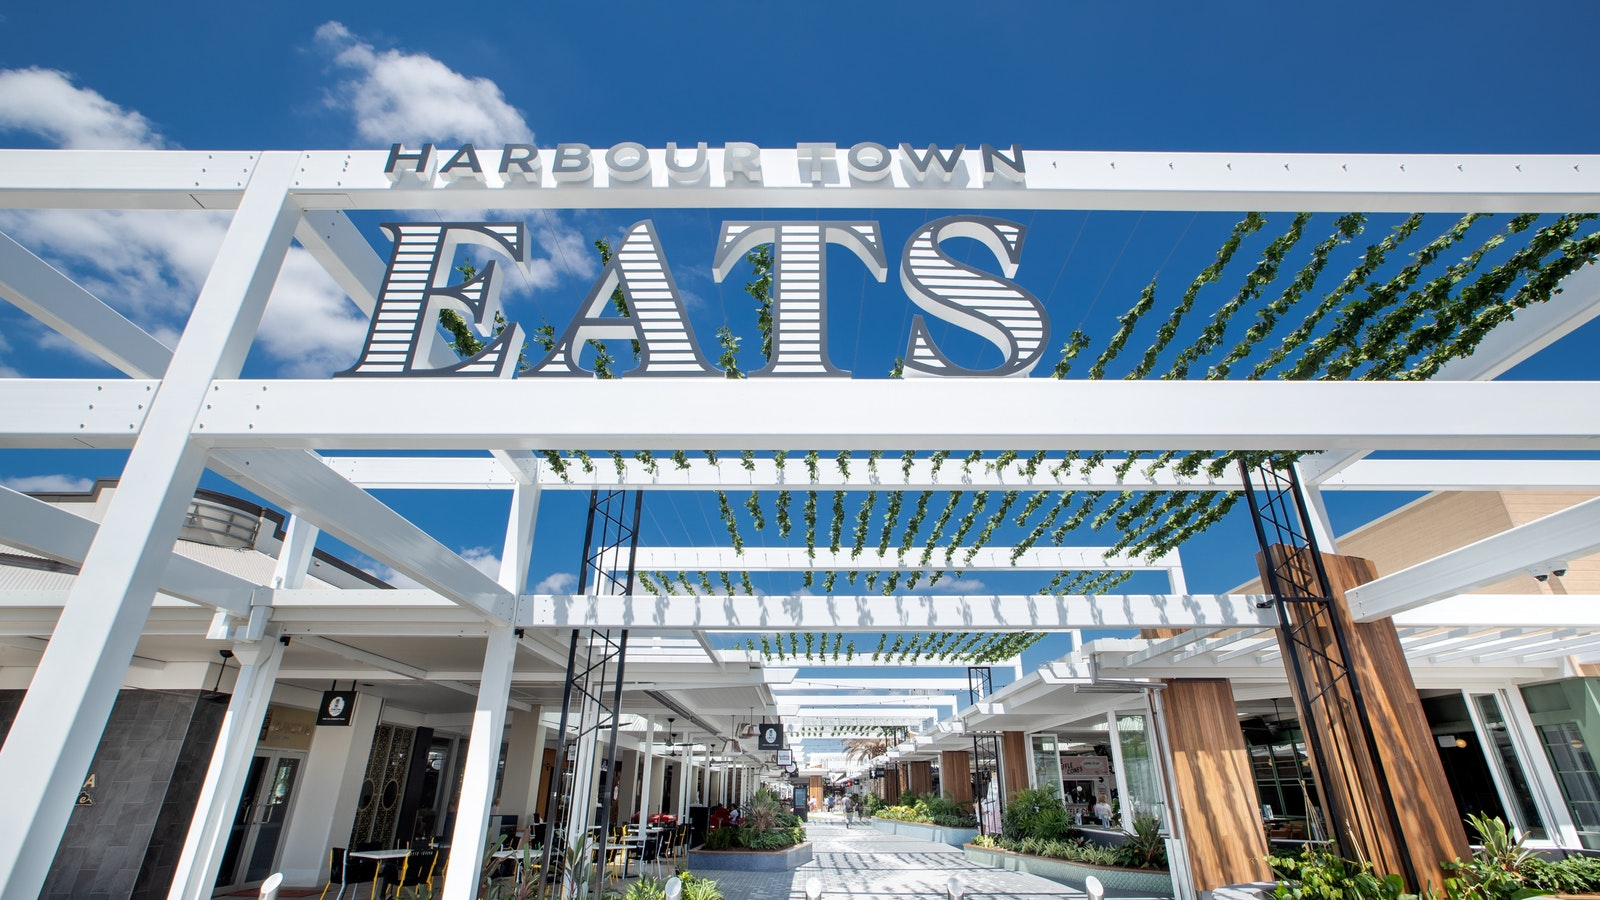 Entry to Harbour Town Eats, a fresh dining destination